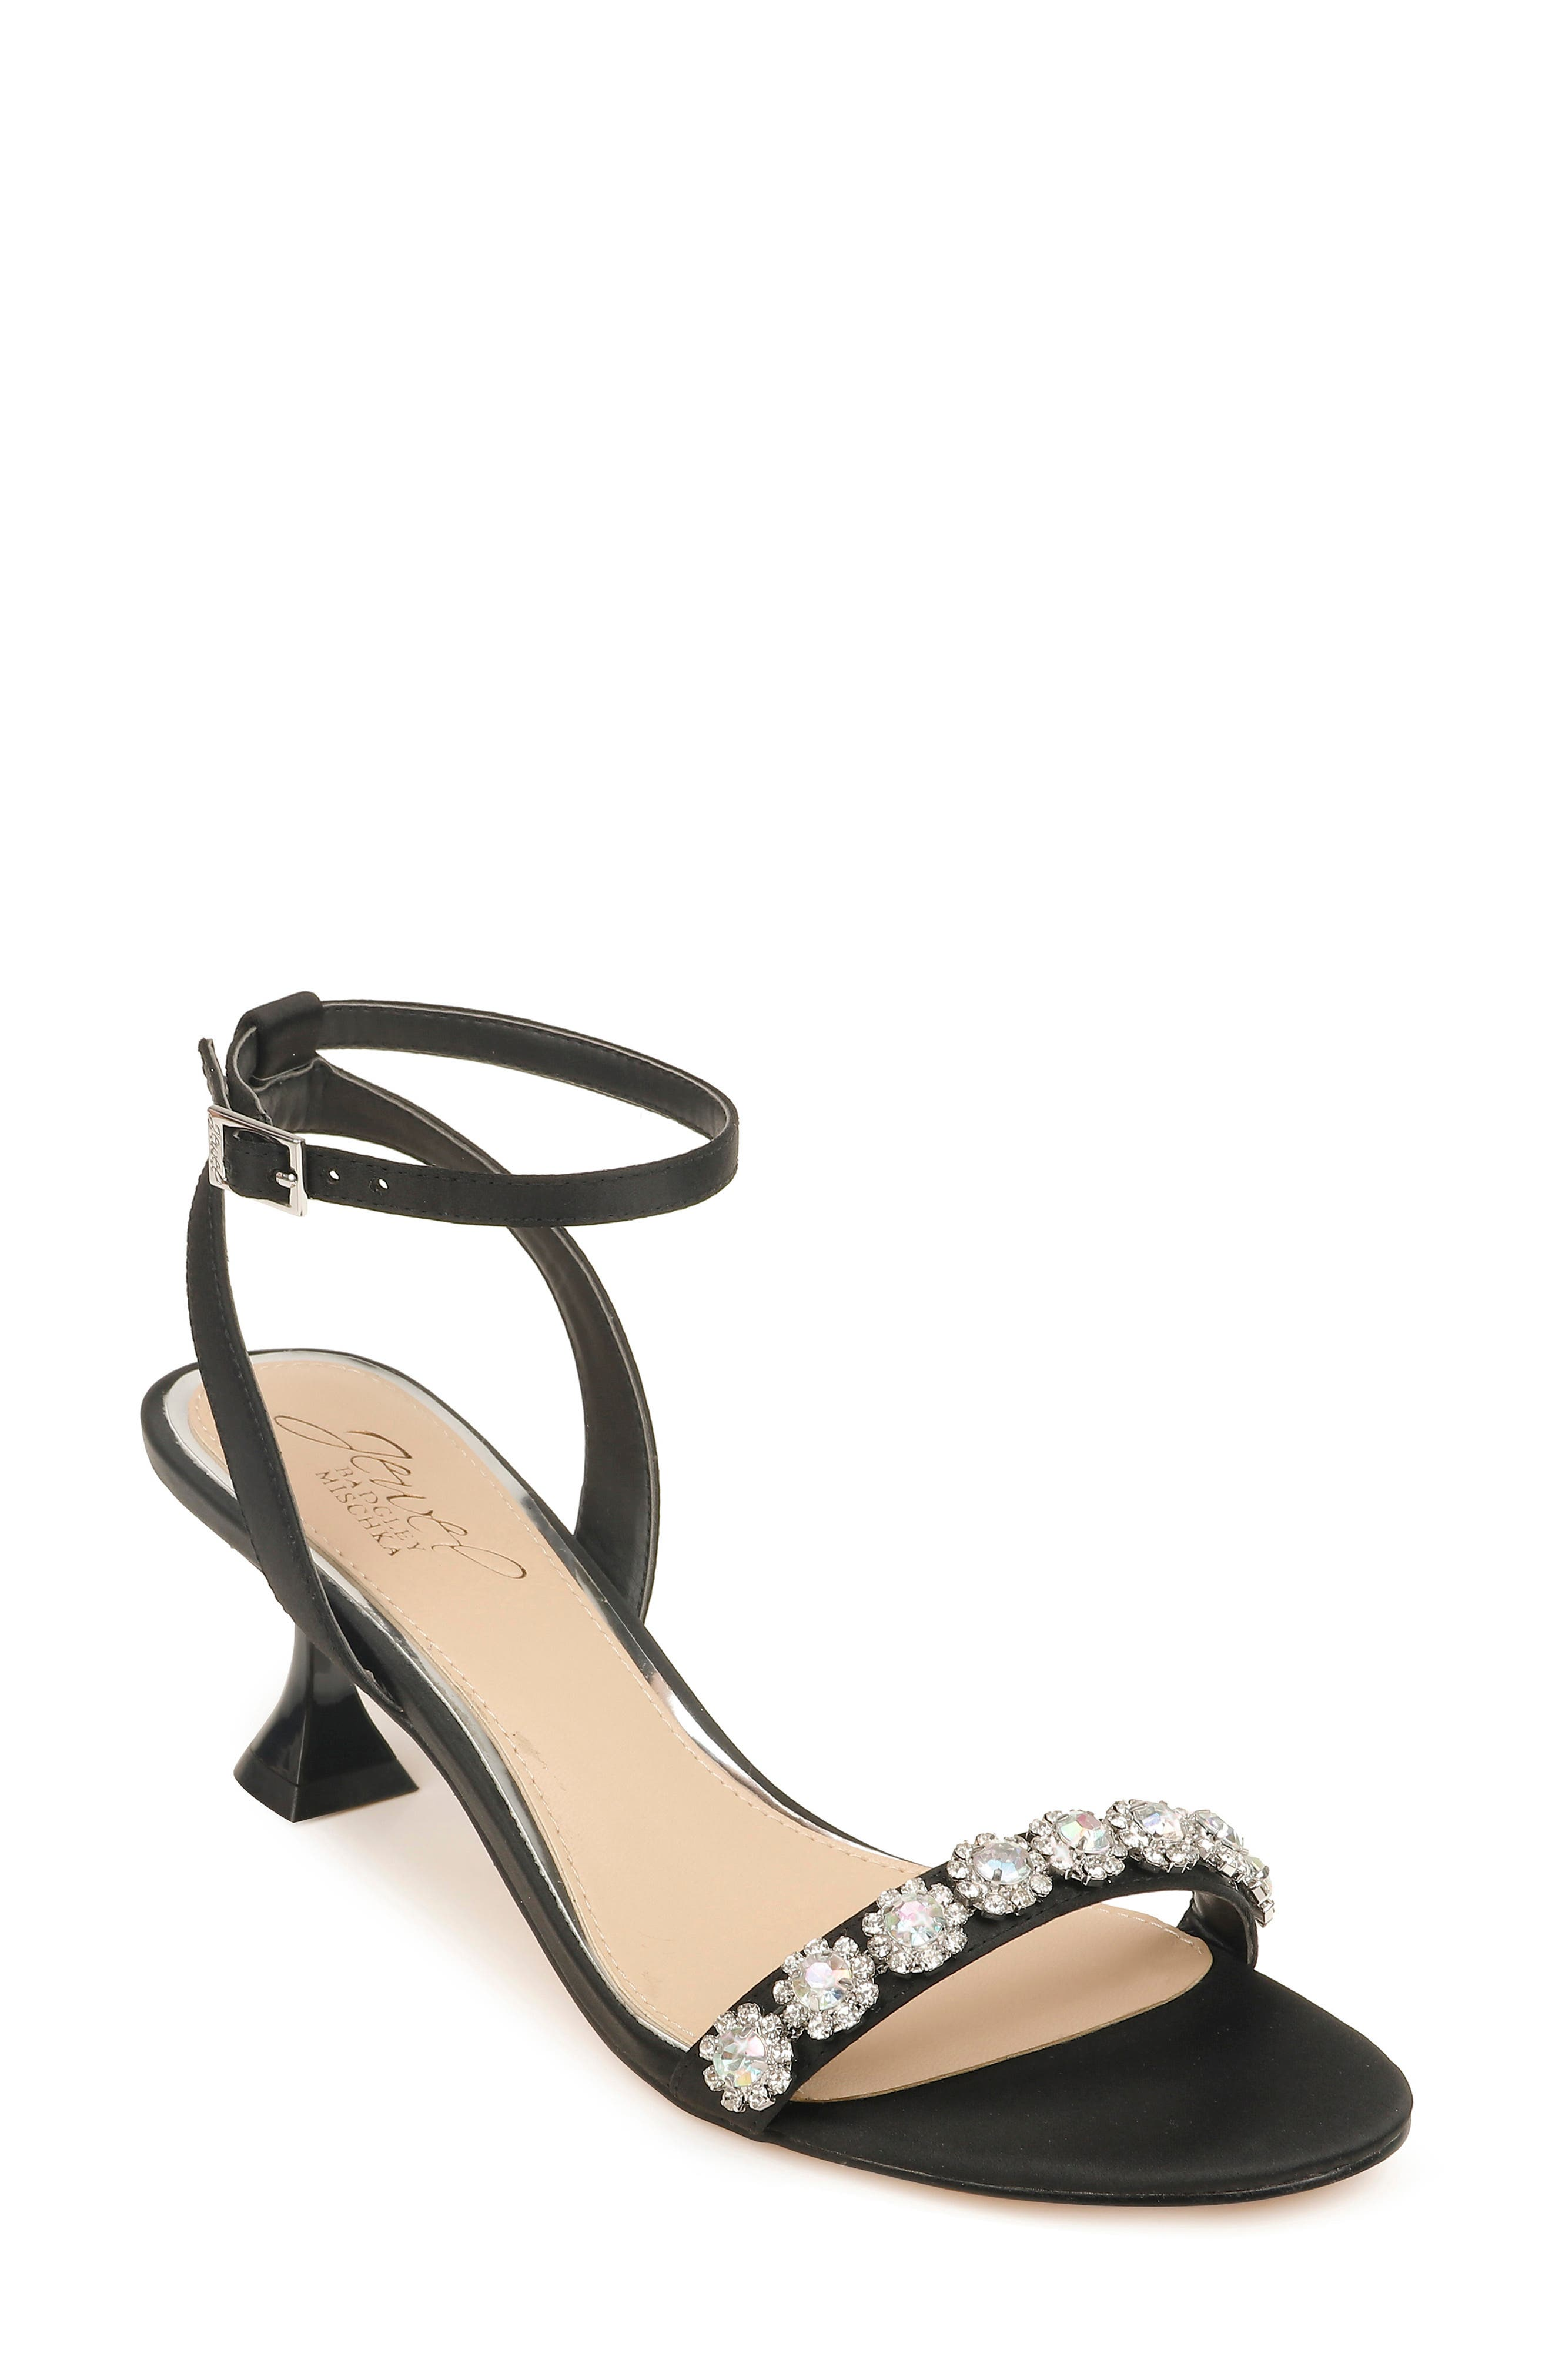 Make the party rounds in a crystal-embellished sandal featuring a lightly padded footbed and flared, pedestal-like heel so you can circulate the room with ease. Style Name: Jewel Badgley Mischka Fantasia Crystal Embellished Sandal (Women). Style Number: 6068851. Available in stores.